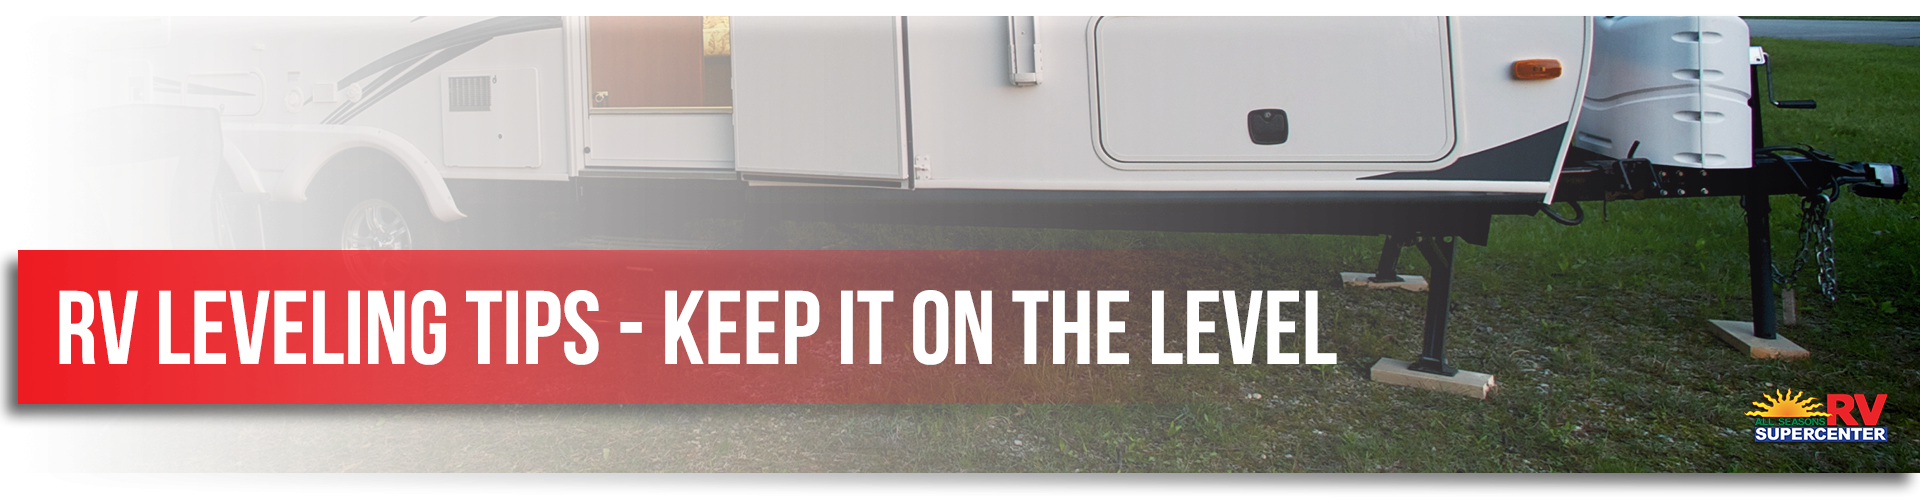 RV Leveling Tips - Keep It on the Level  All Seasons RV Blog